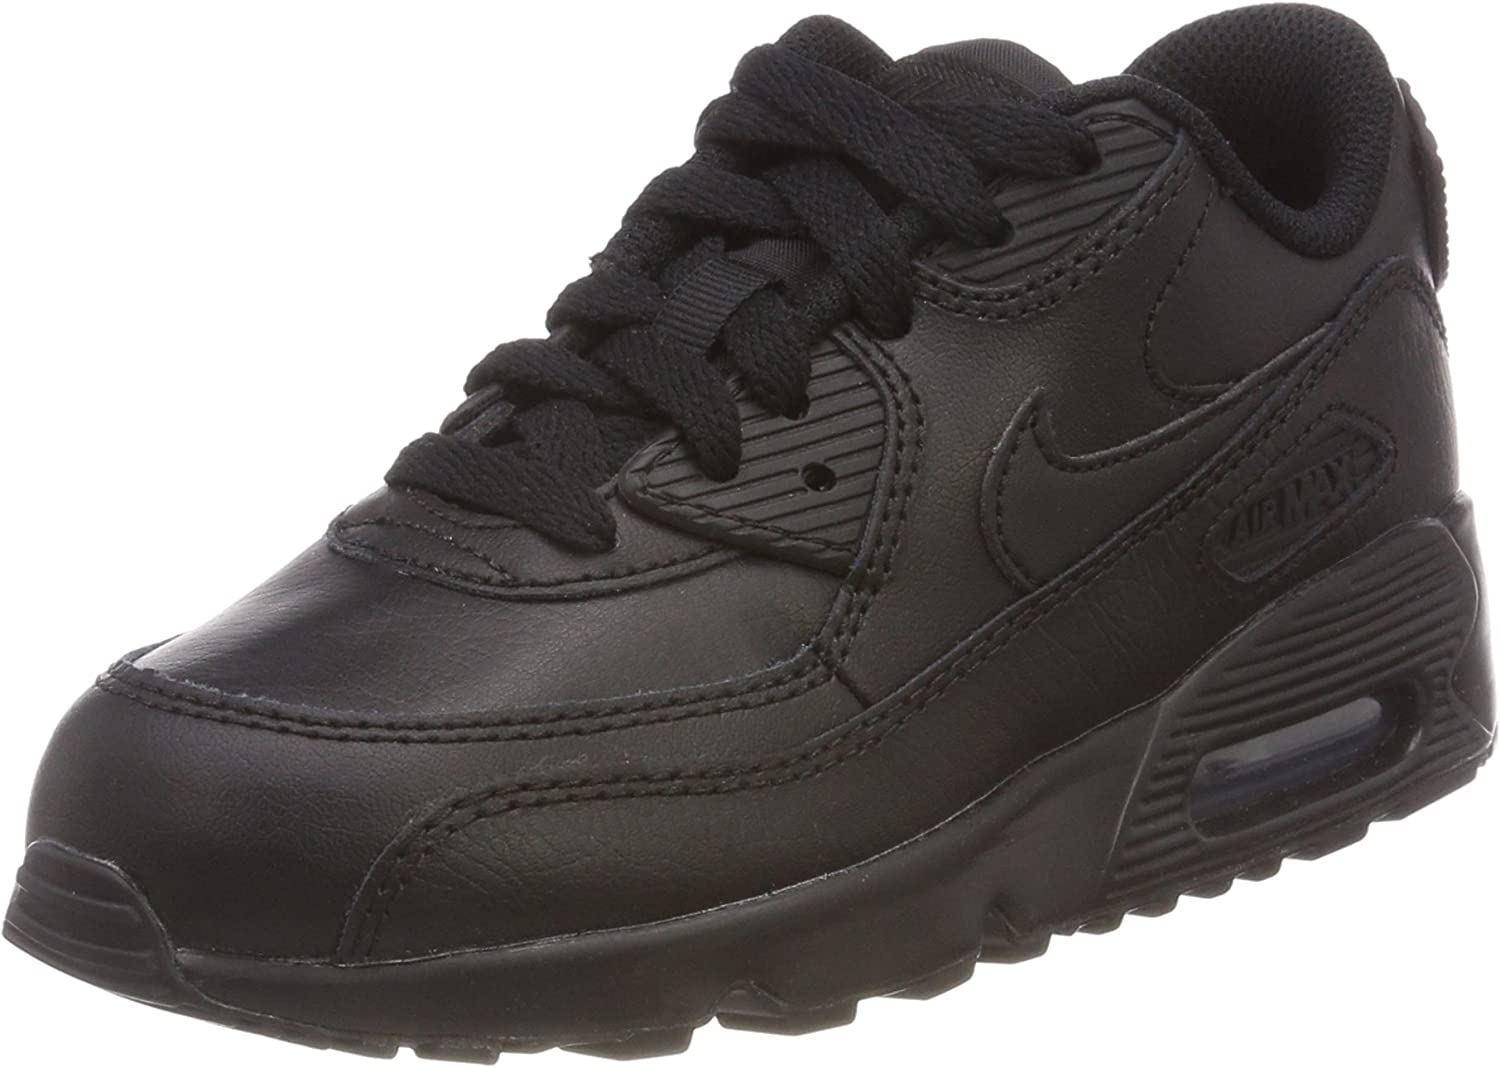 luces tubo tetraedro  Nike Air Max 90 Leather (Ps), Boy's Running Shoes, Black, 13 Child UK (31.5  EU): Amazon.co.uk: Shoes & Bags